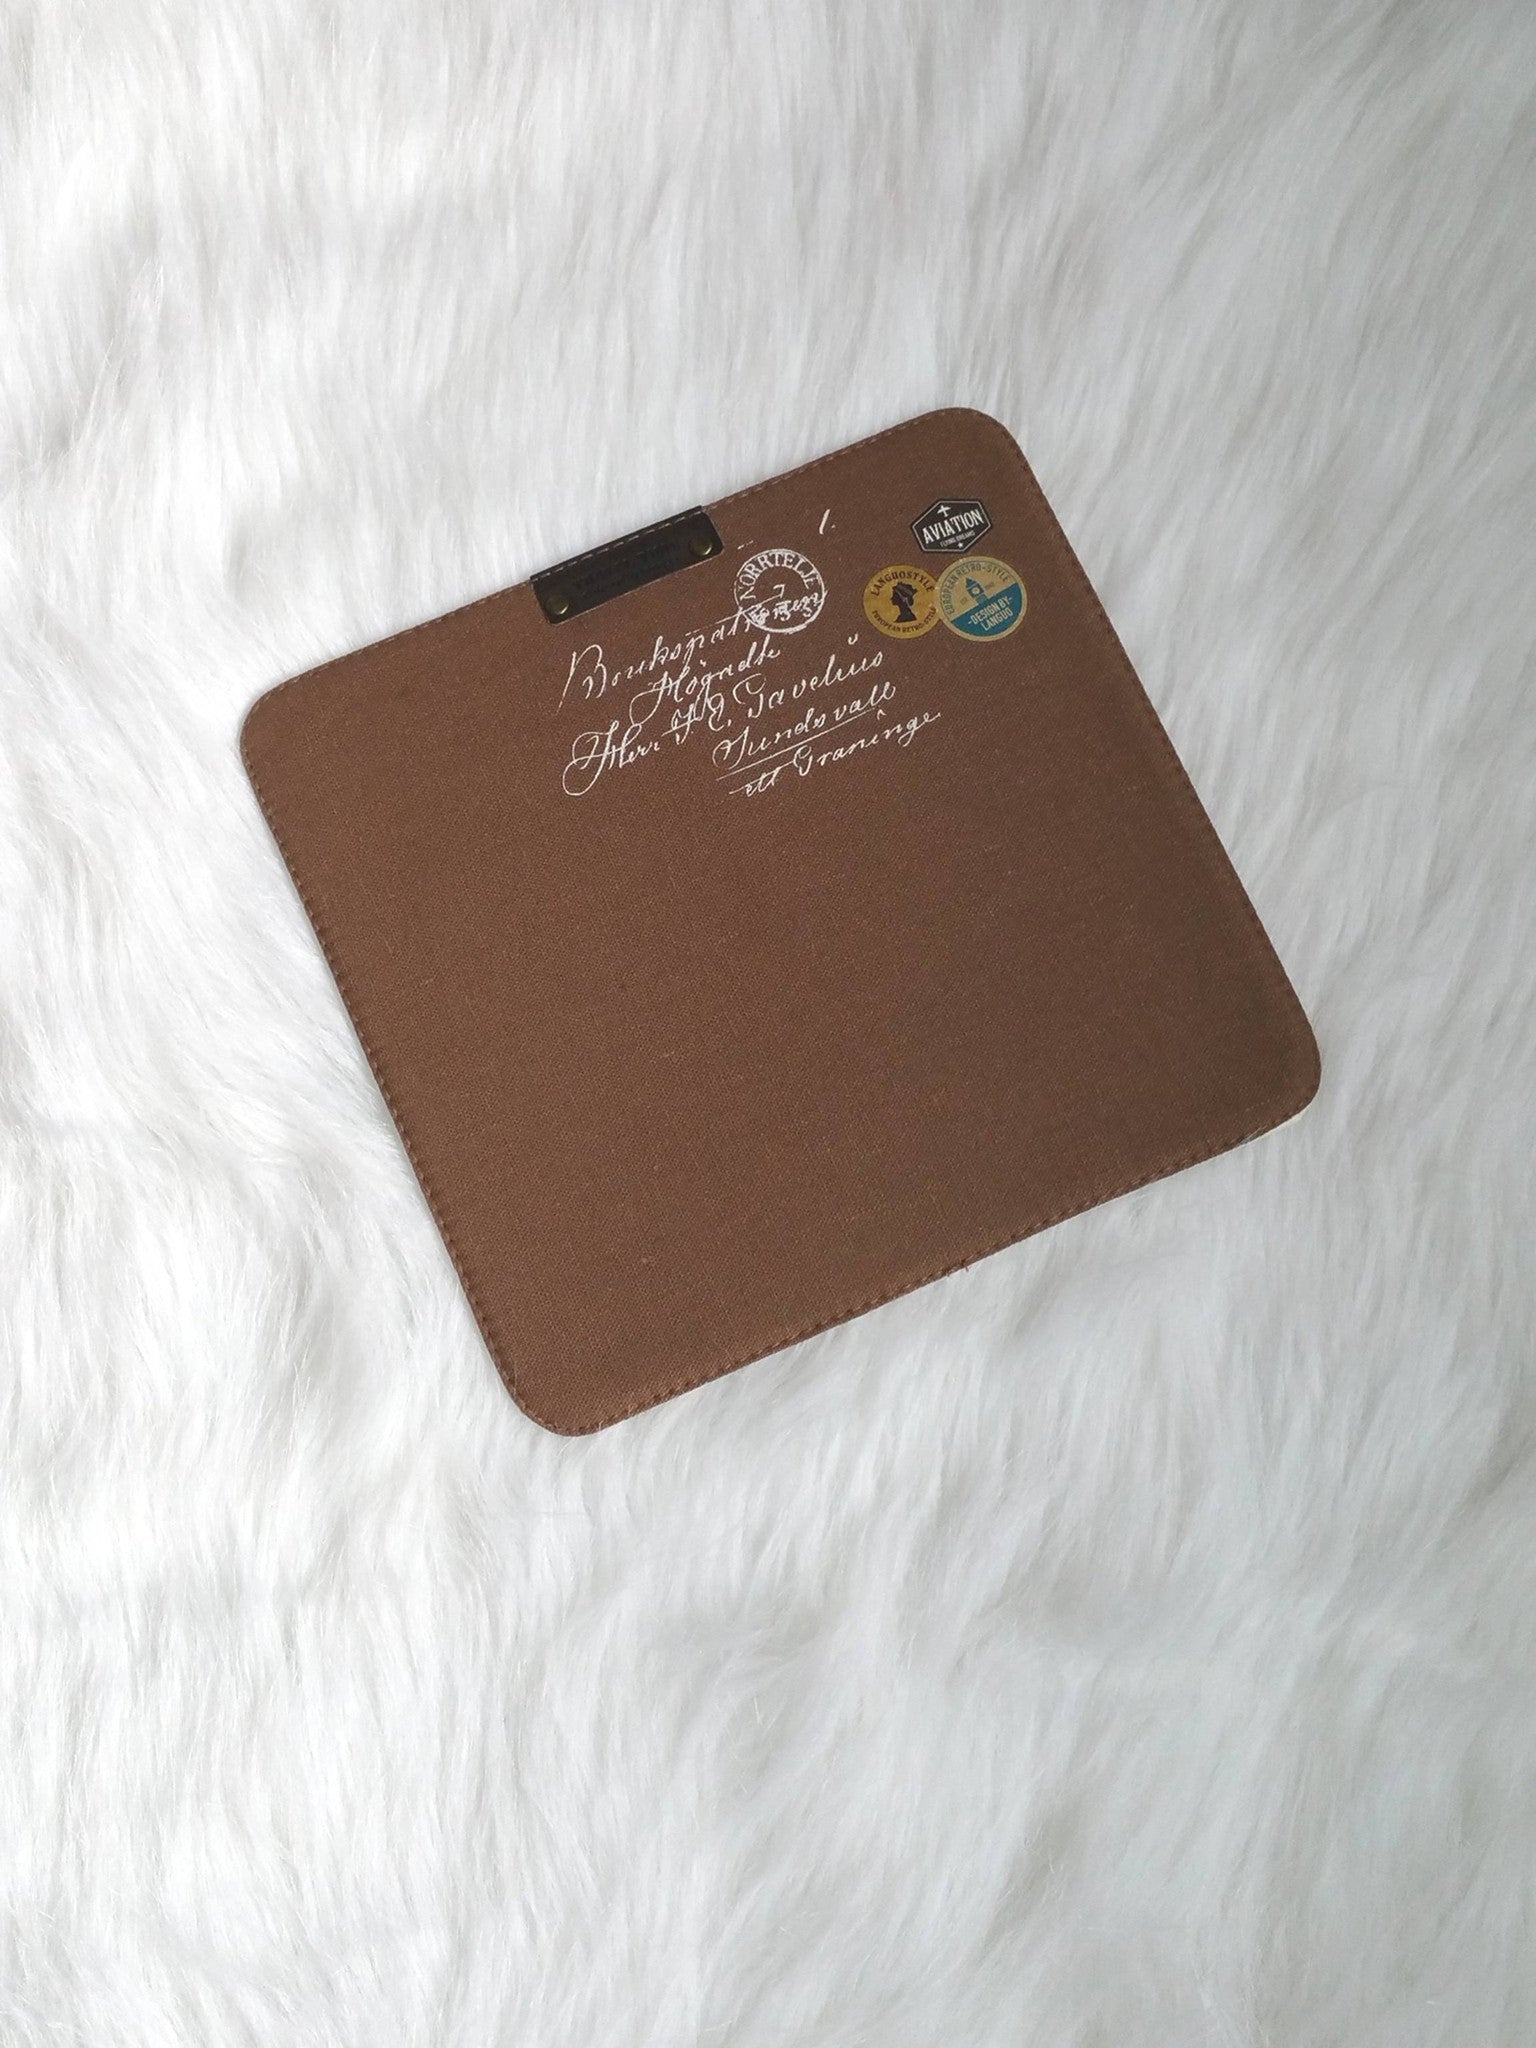 Brown Mouse Pads, Office Mouse Pads, Office Gifts, Co-worker Gifts